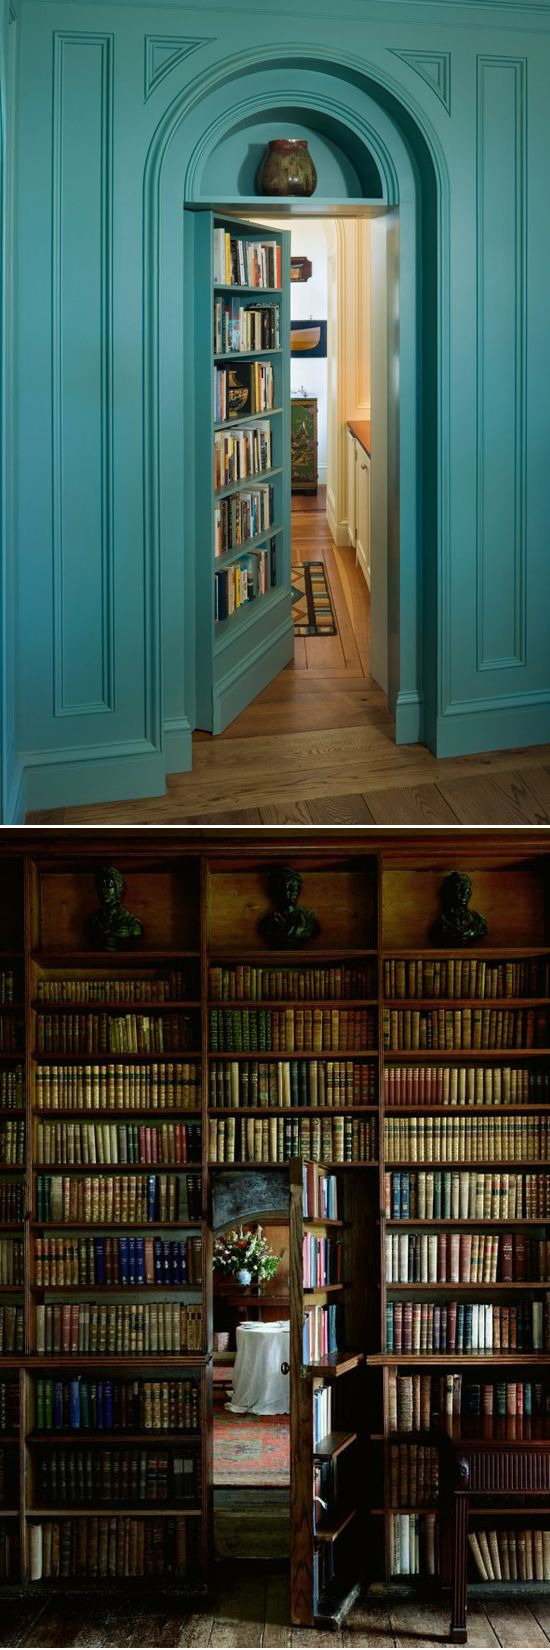 31 Beautiful Hidden Rooms And Secret Passages I will